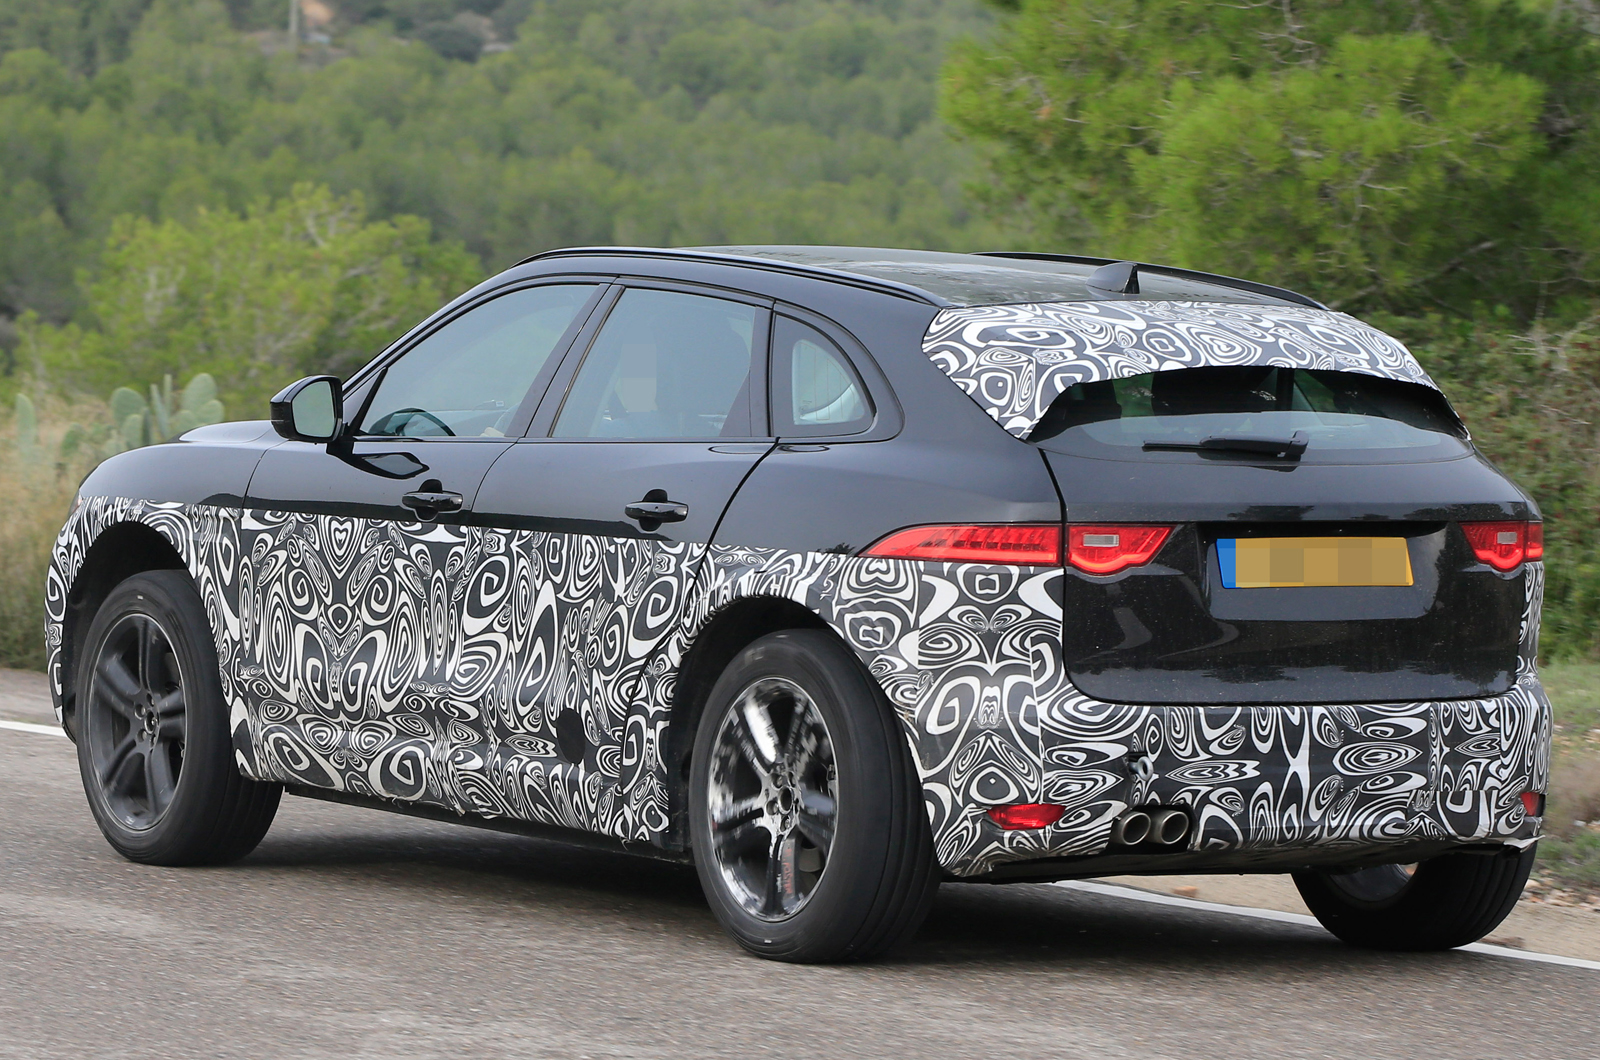 F Pace For Sale >> Jaguar I-Pace electric SUV mule spotted testing again